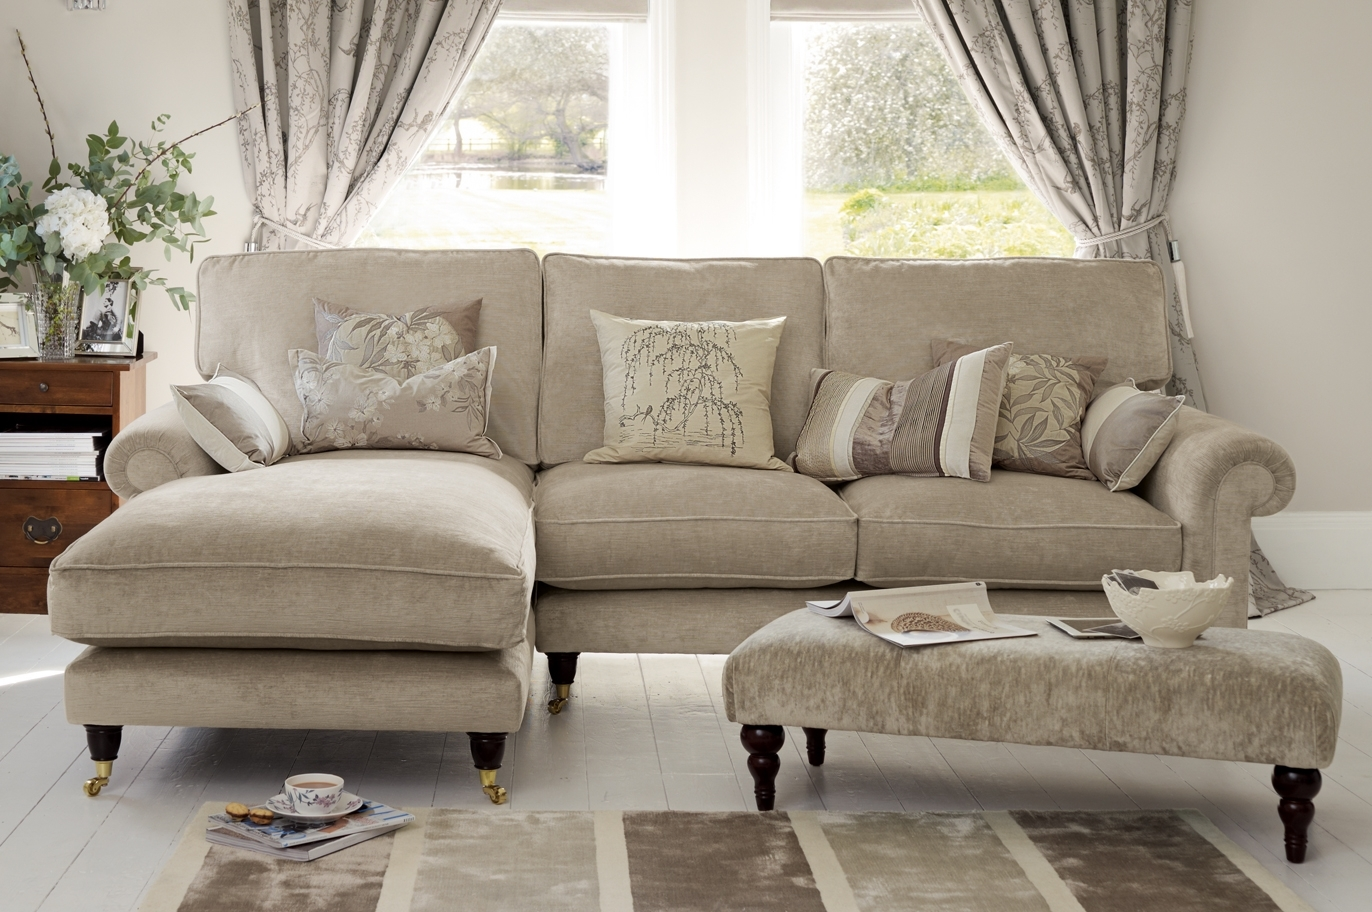 "Kingston"" Sectional Sofa With Chaise In Sable Beige From Laura Inside Kingston Sectional Sofas (Photo 1 of 10)"